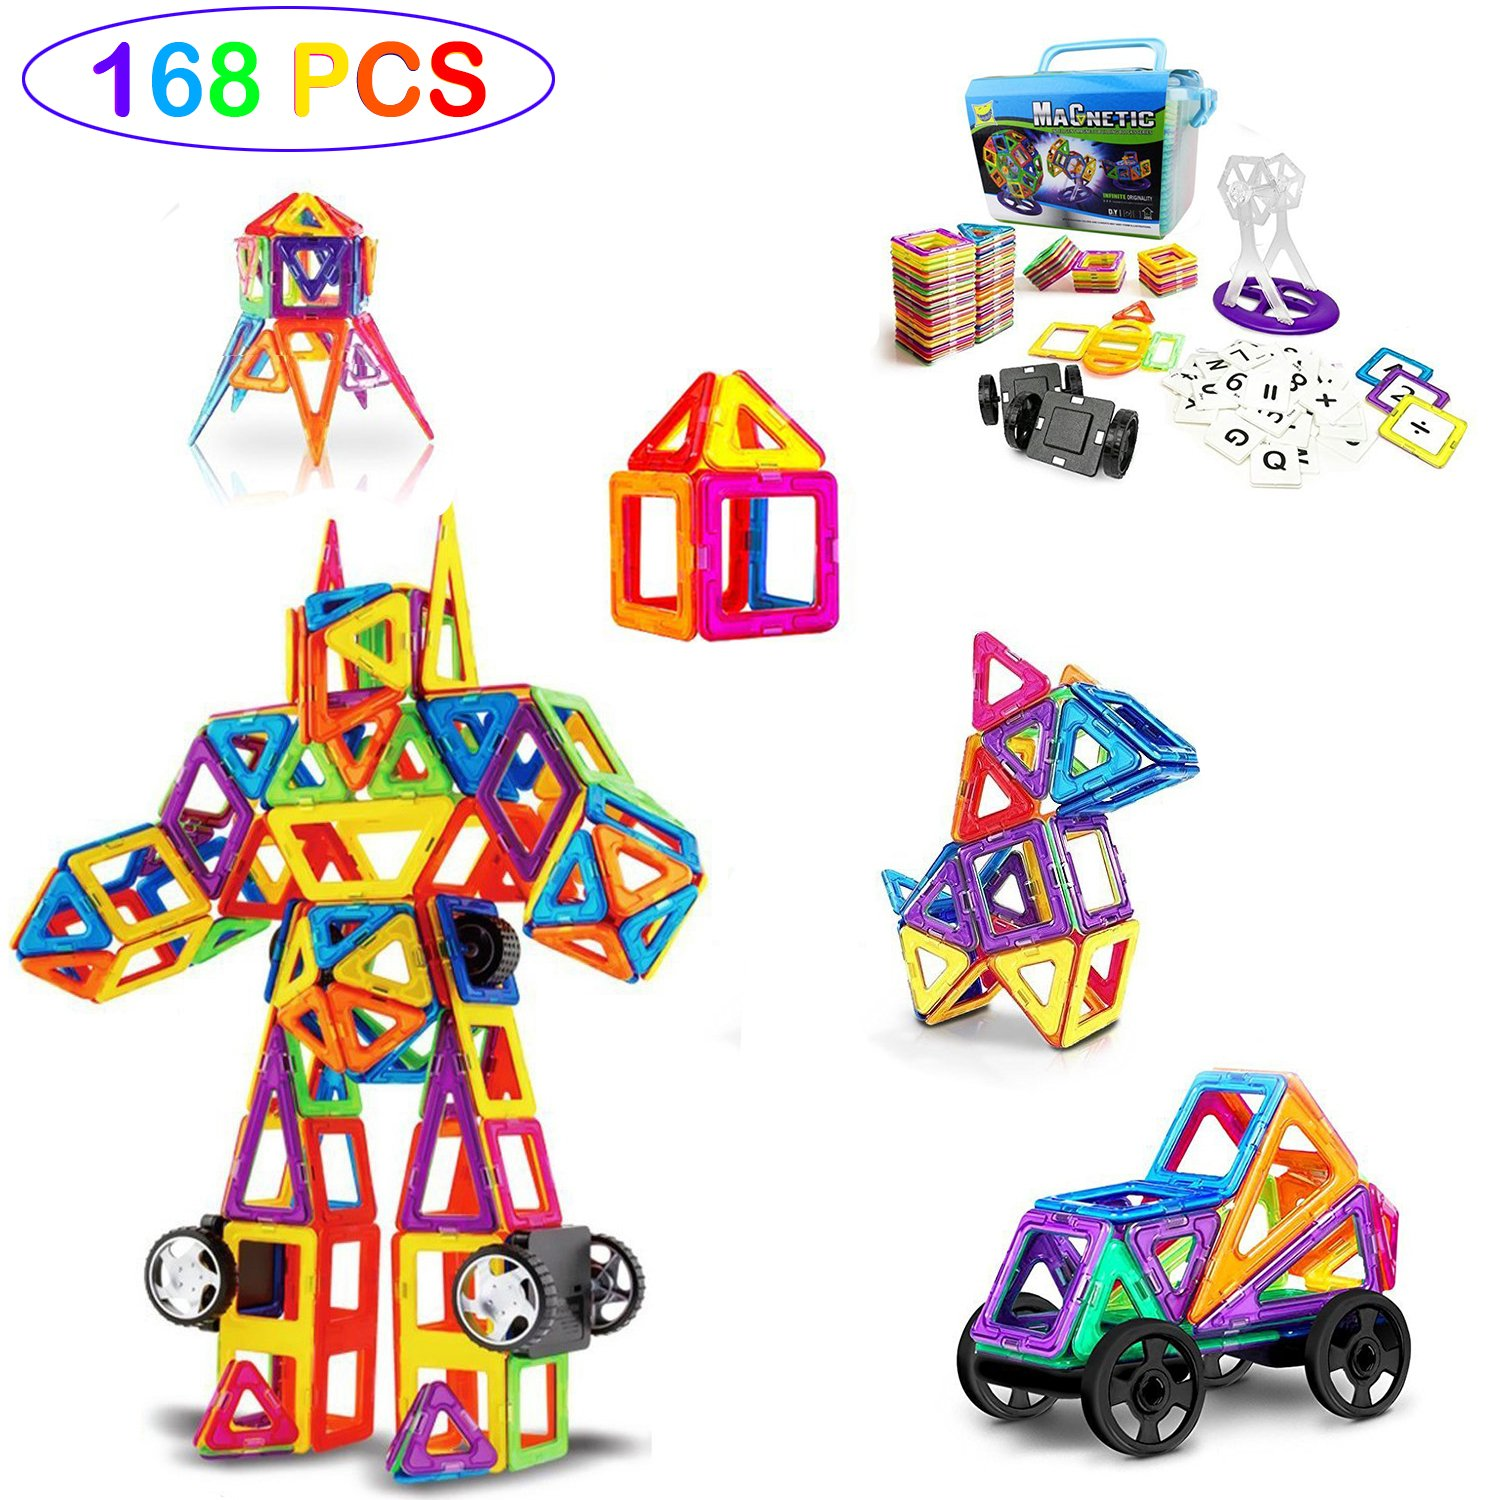 Magnetic Building Blocks For Pre-Kindergarten Toys , Magnet Tiles Educational Stacking Building Set With Storage Box , Creativity beyond Imagination, Inspirational , For Boys Girls , Age 3+ (168)